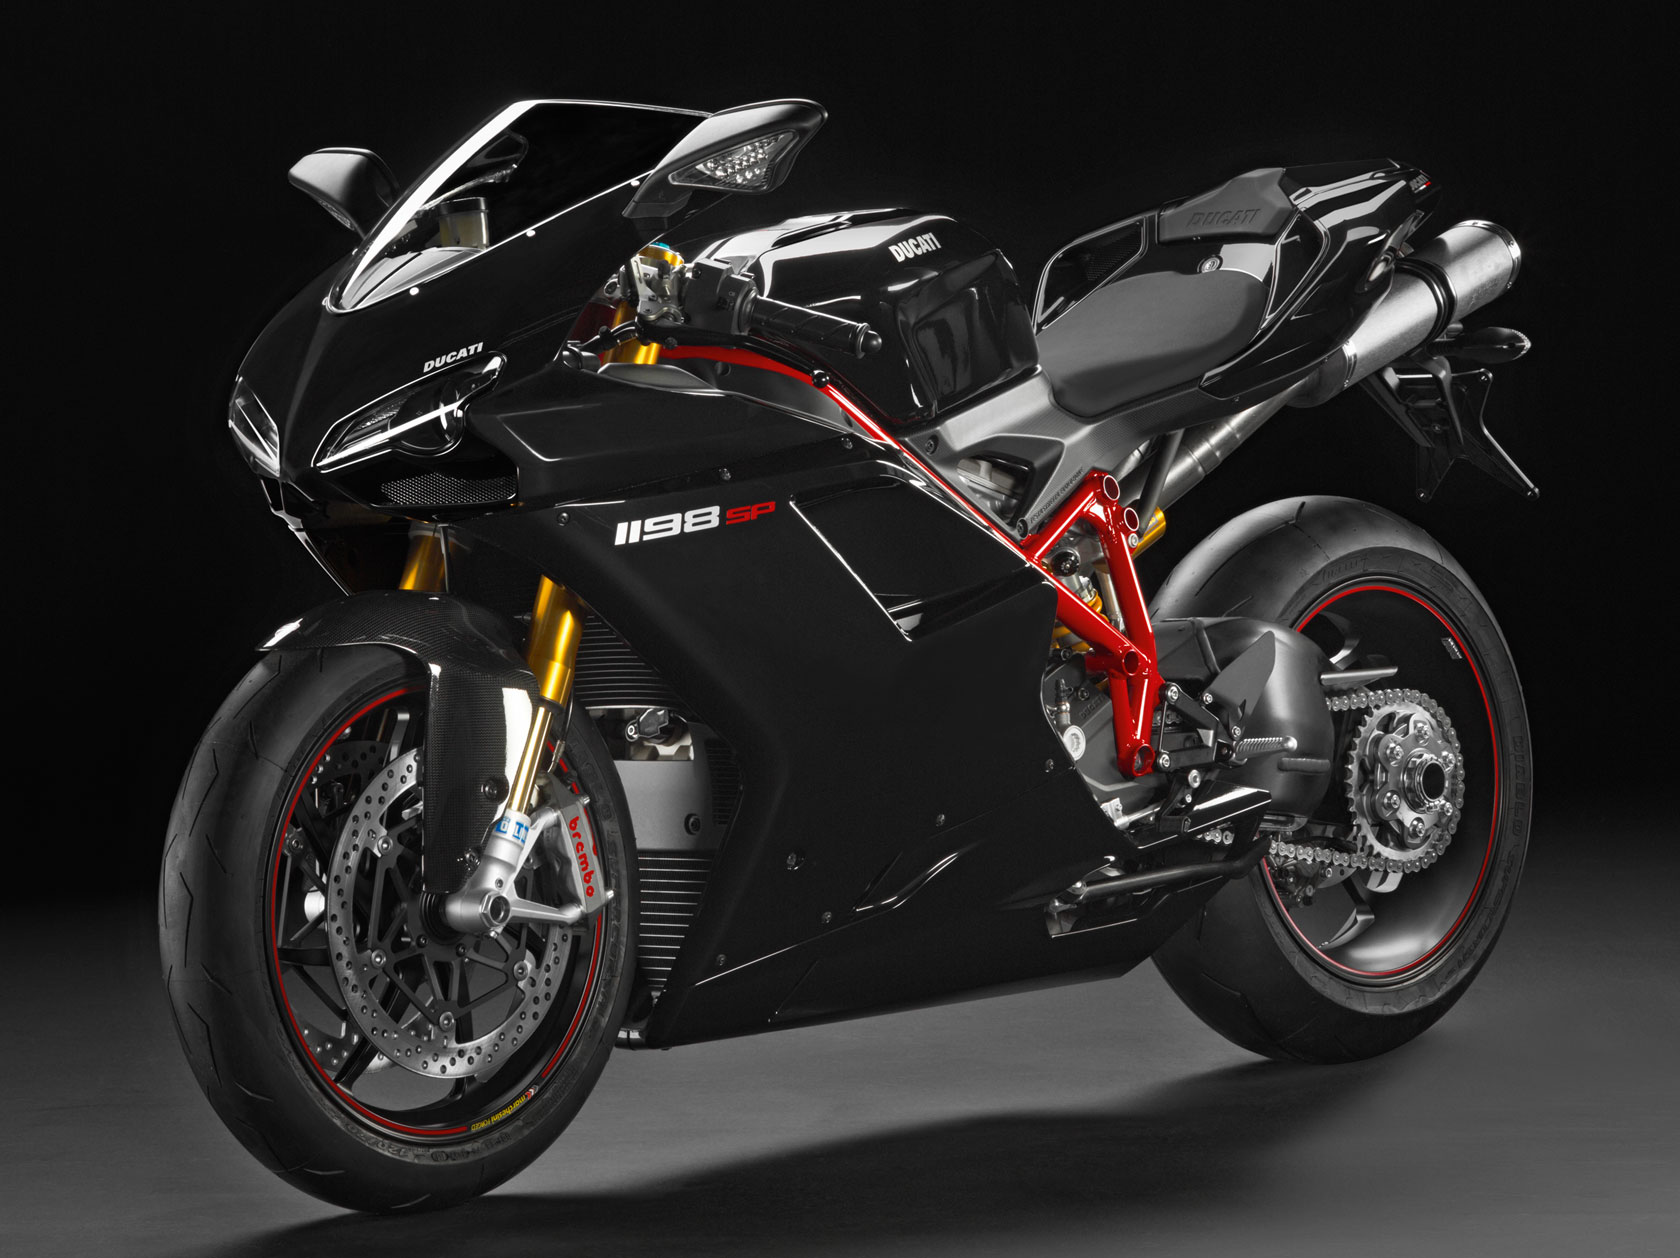 Honda Motorcycle Ducati Sp Free 257390 Wallpaper wallpaper